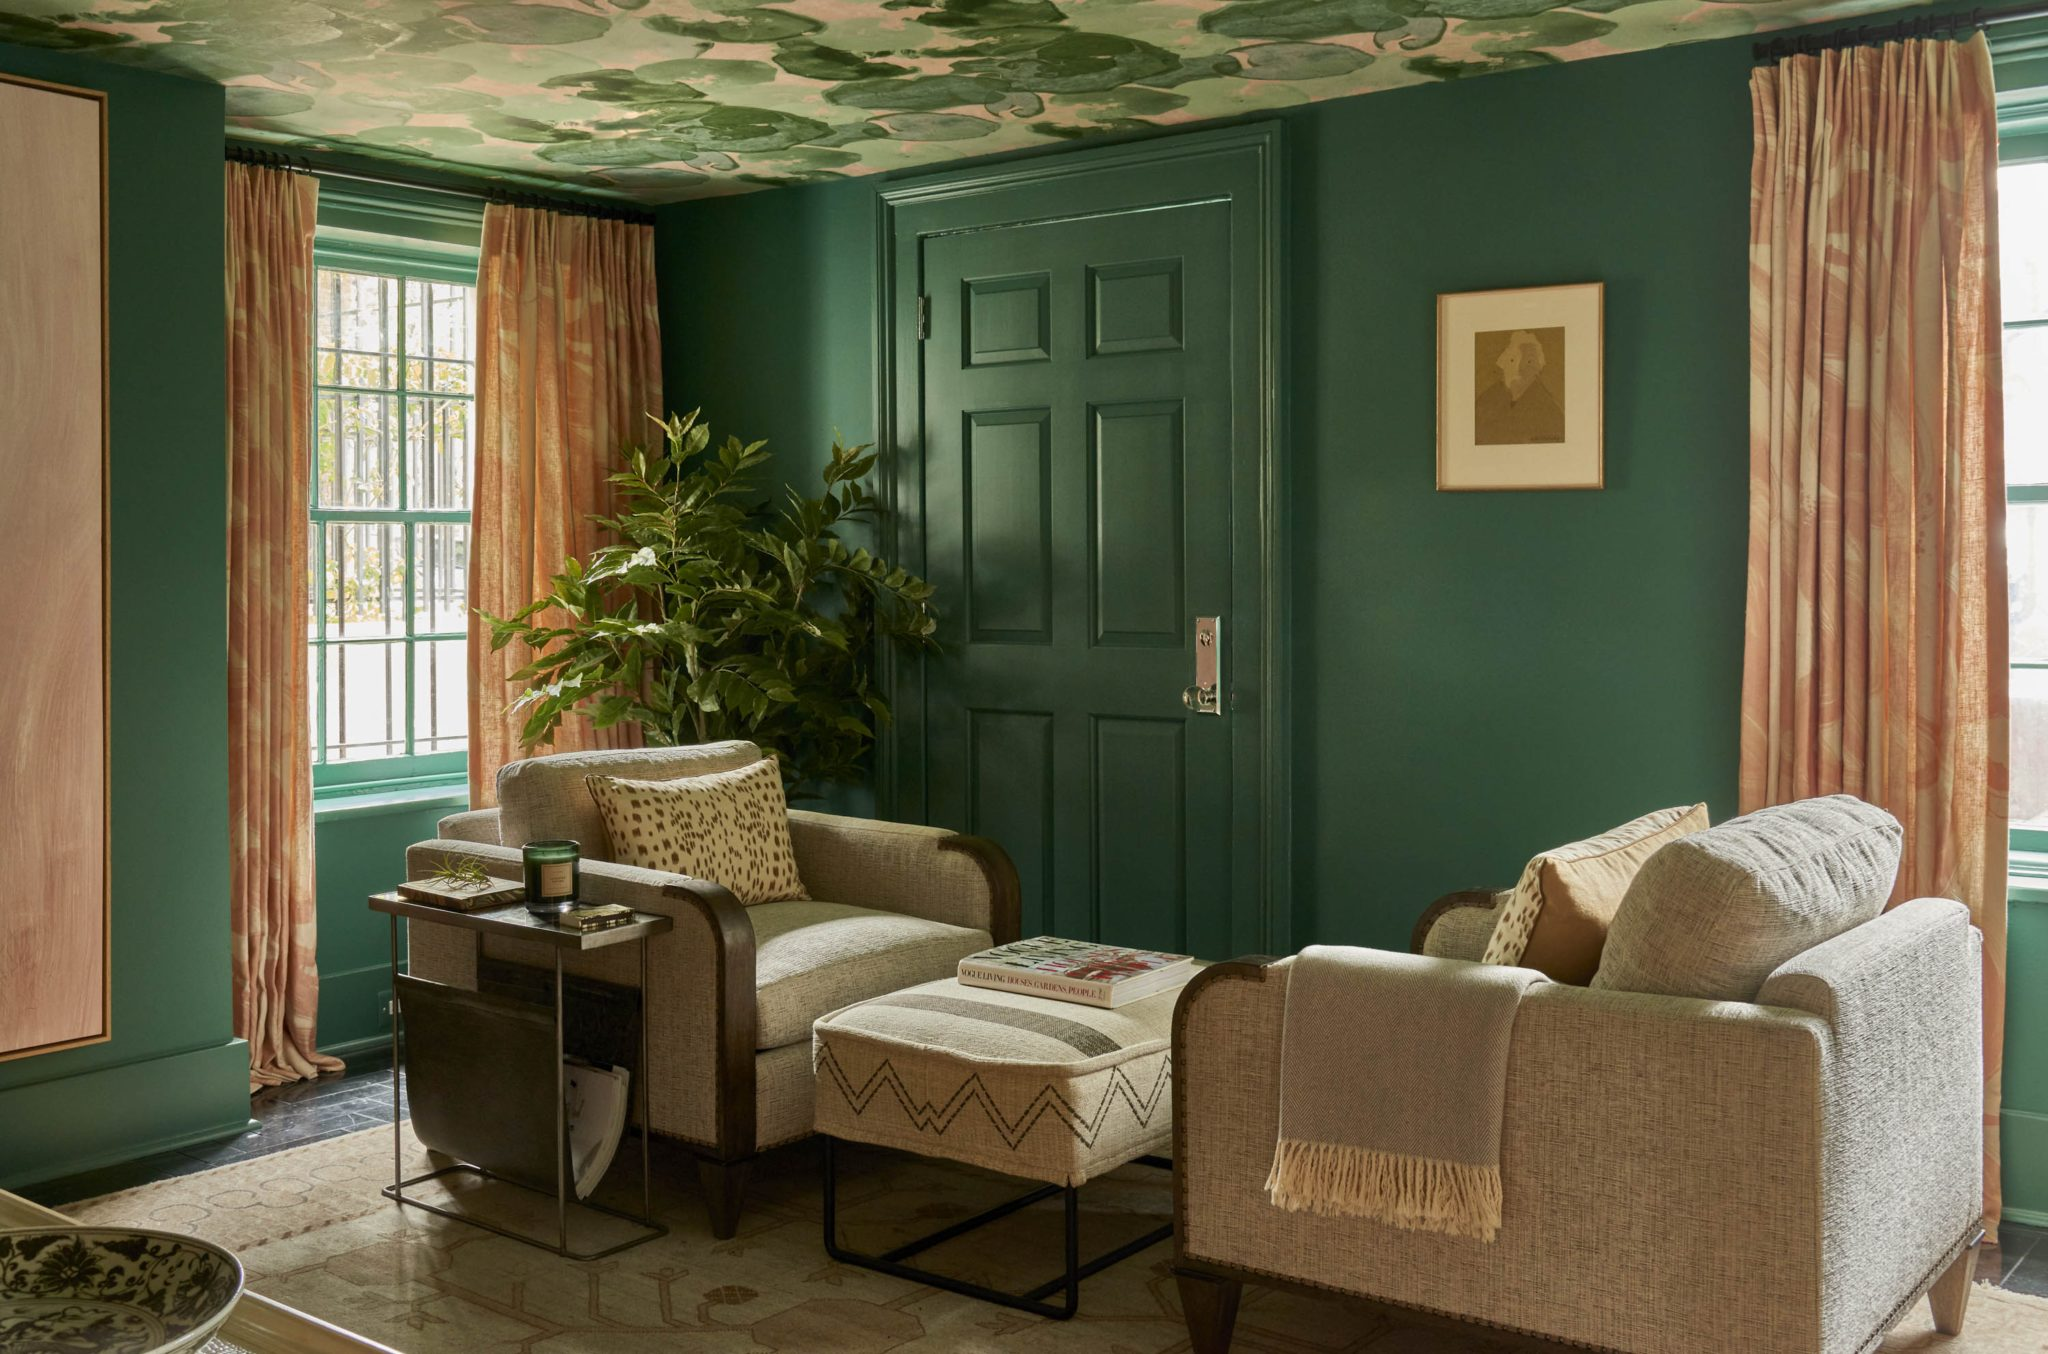 Sitting Area in Shades of Green & Blush by Denise McGaha Interiors